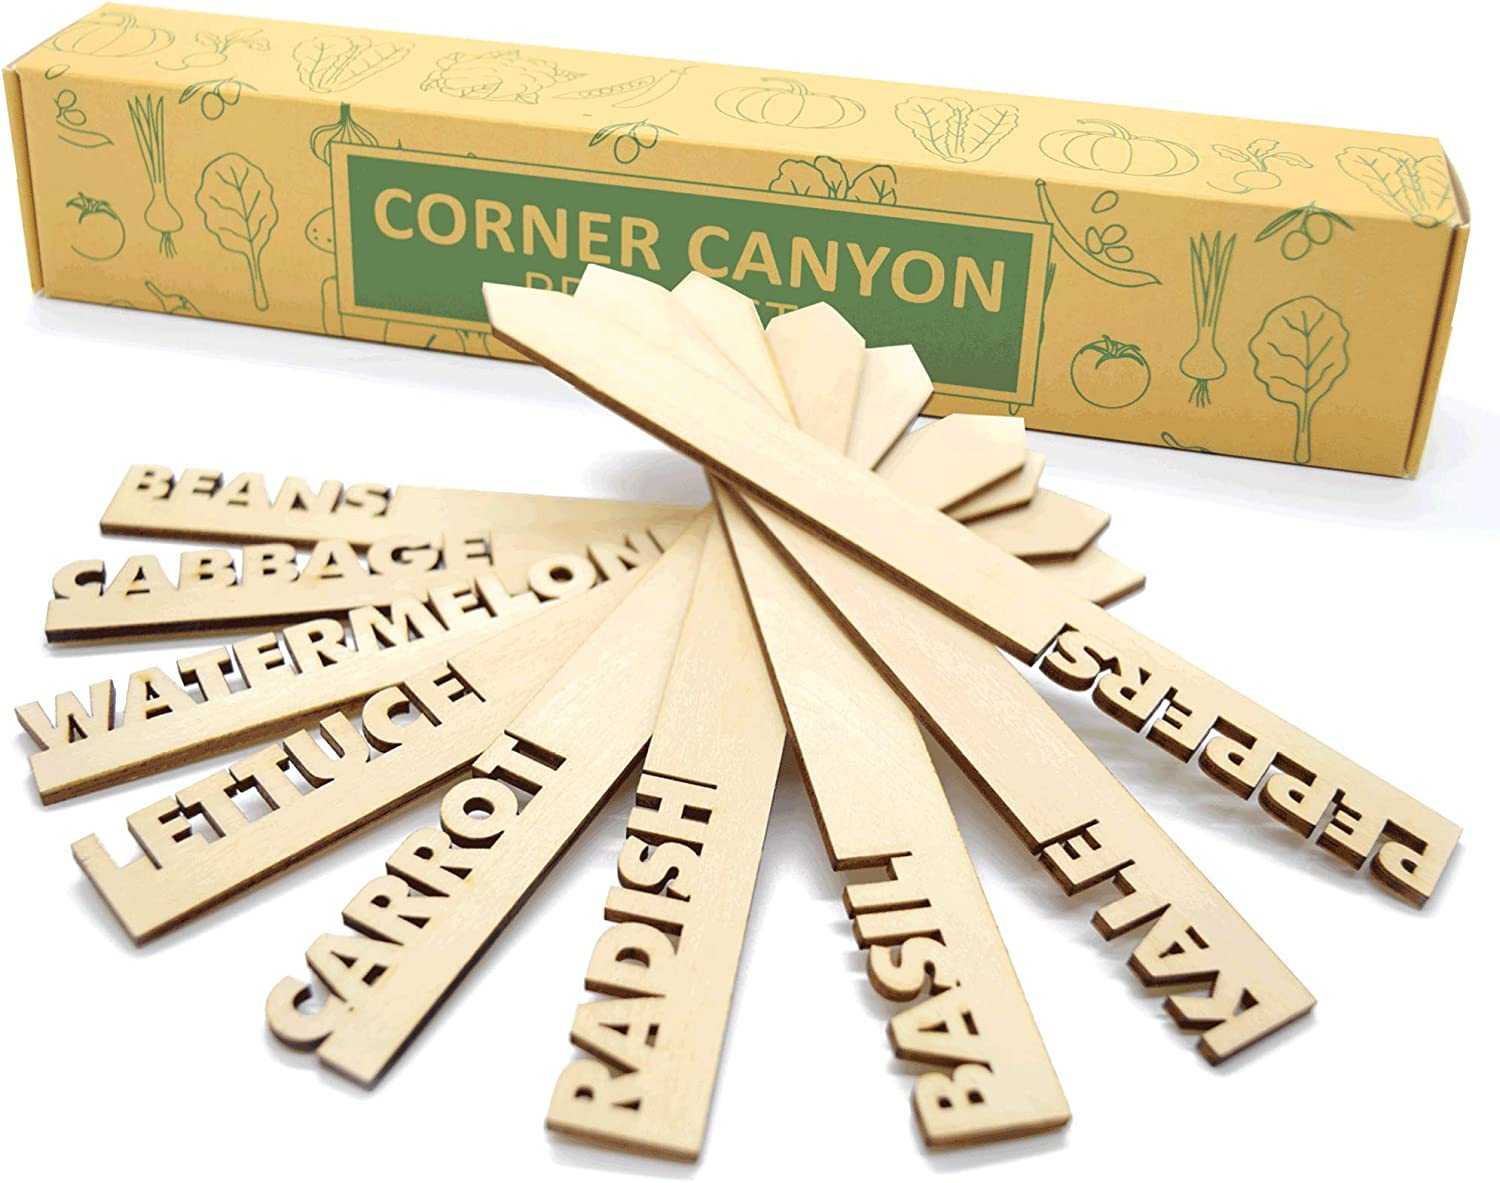 Wooden Plant Labels for Garden - 20 Plant Markers are Great Garden Gifts to Label Outdoor Or Indoor Plants, Vegetable, Herb, Pots, Ect.